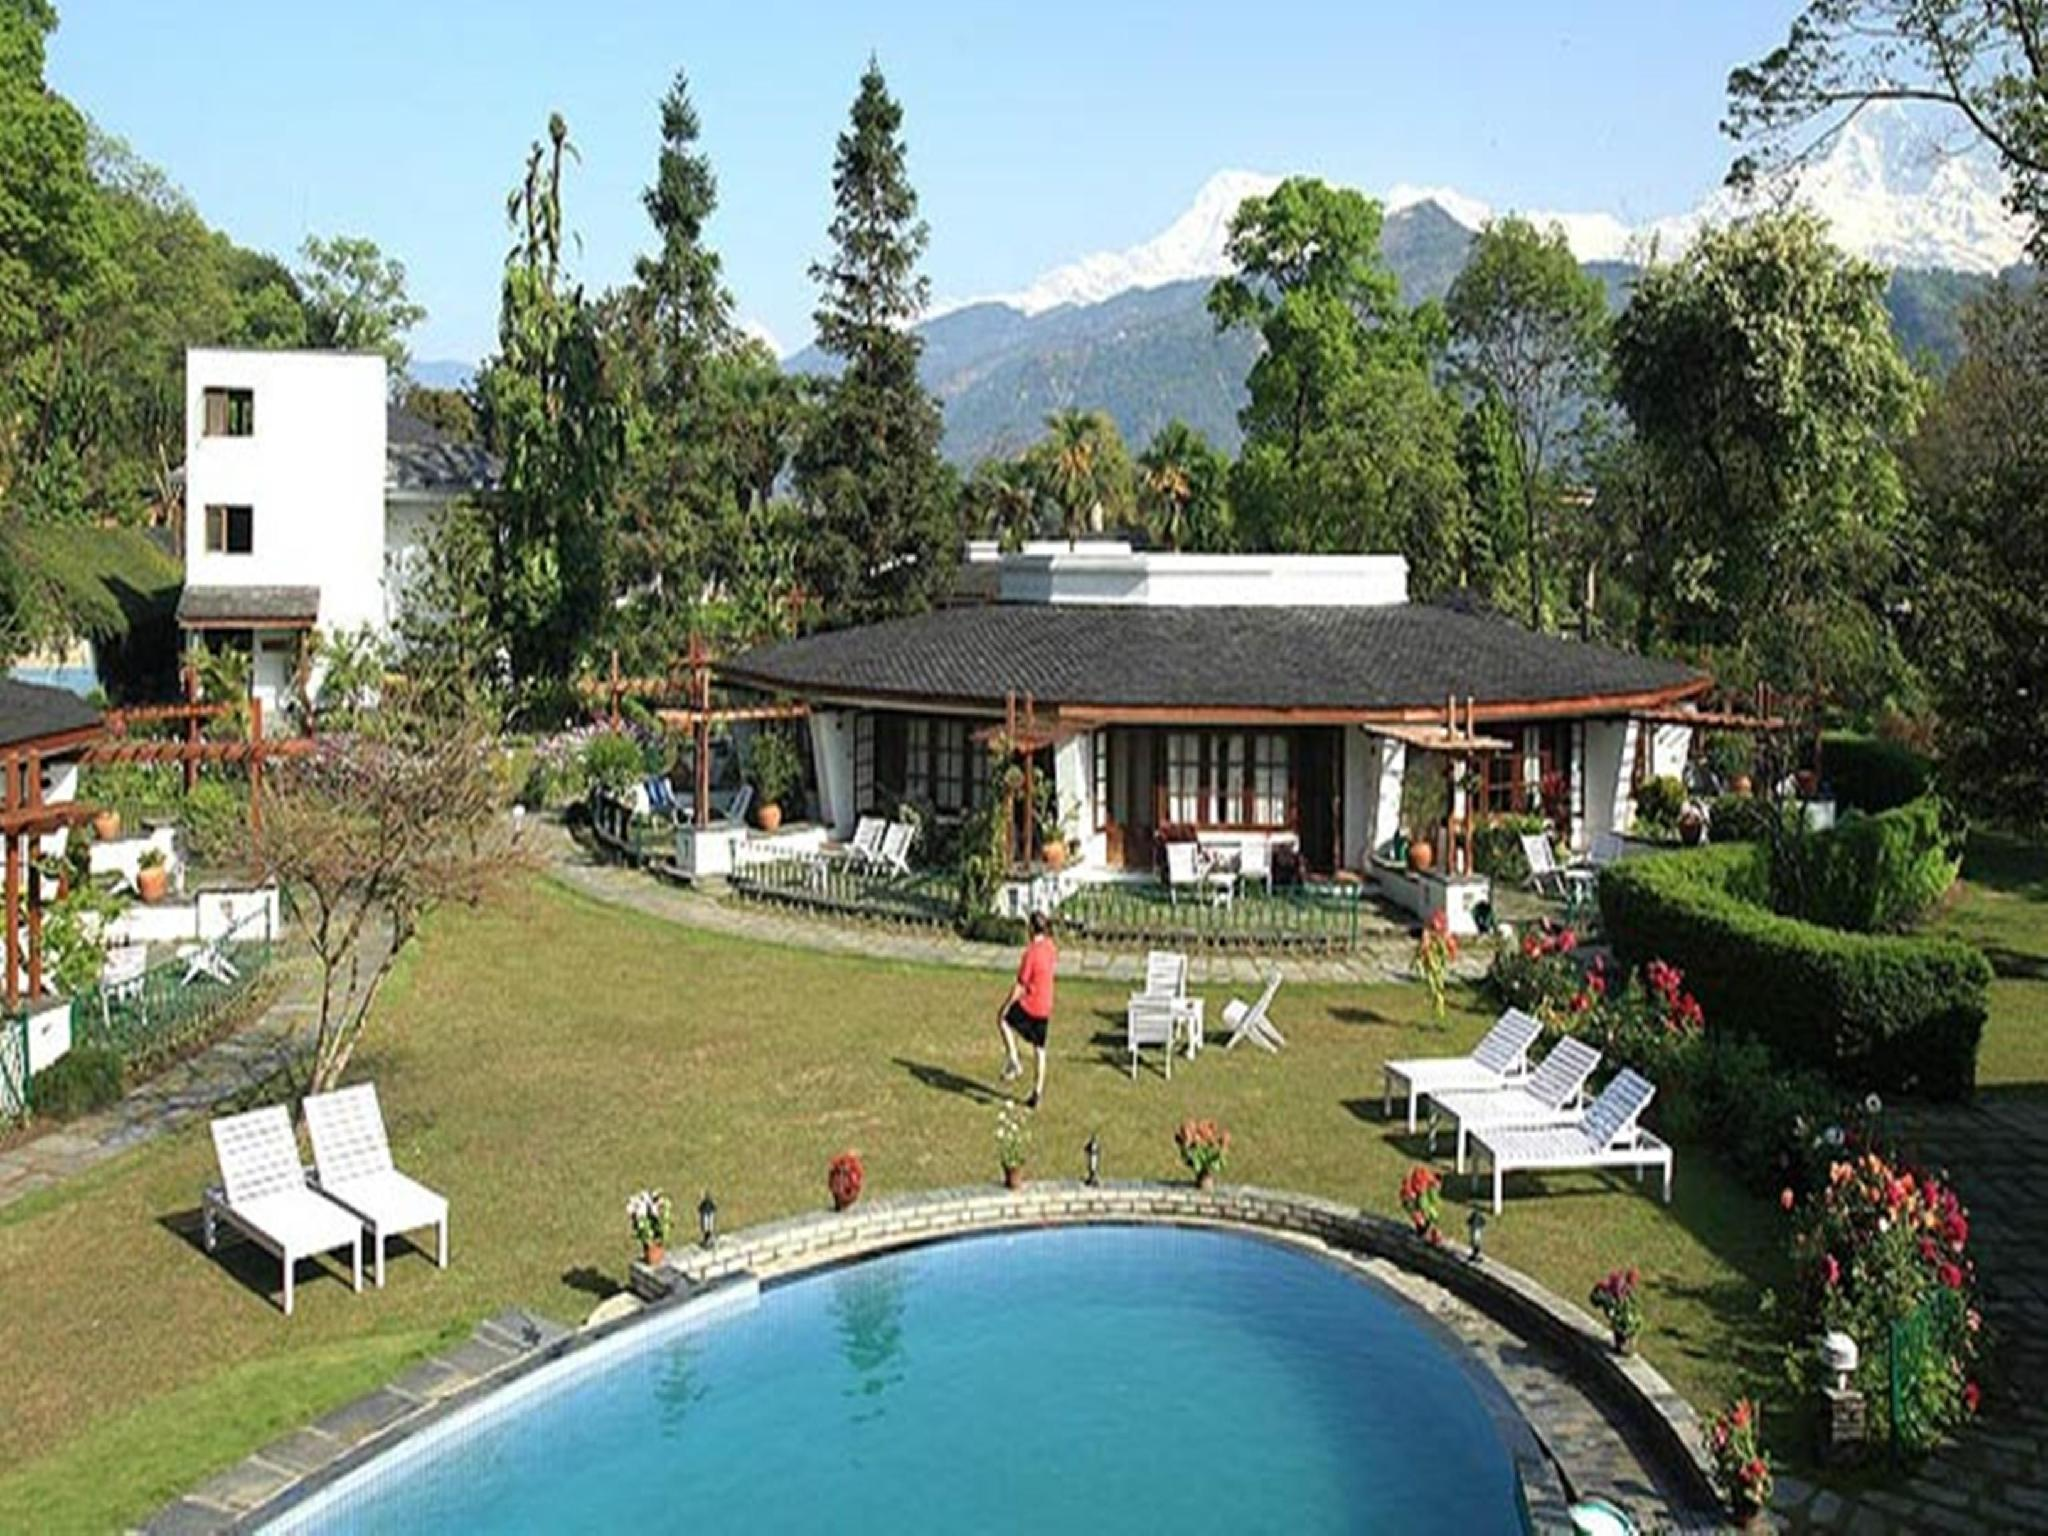 Fishtail Lodge Pokhara Phewa Lake Hotels Special Hotel Reservation For Hotels In Nepal